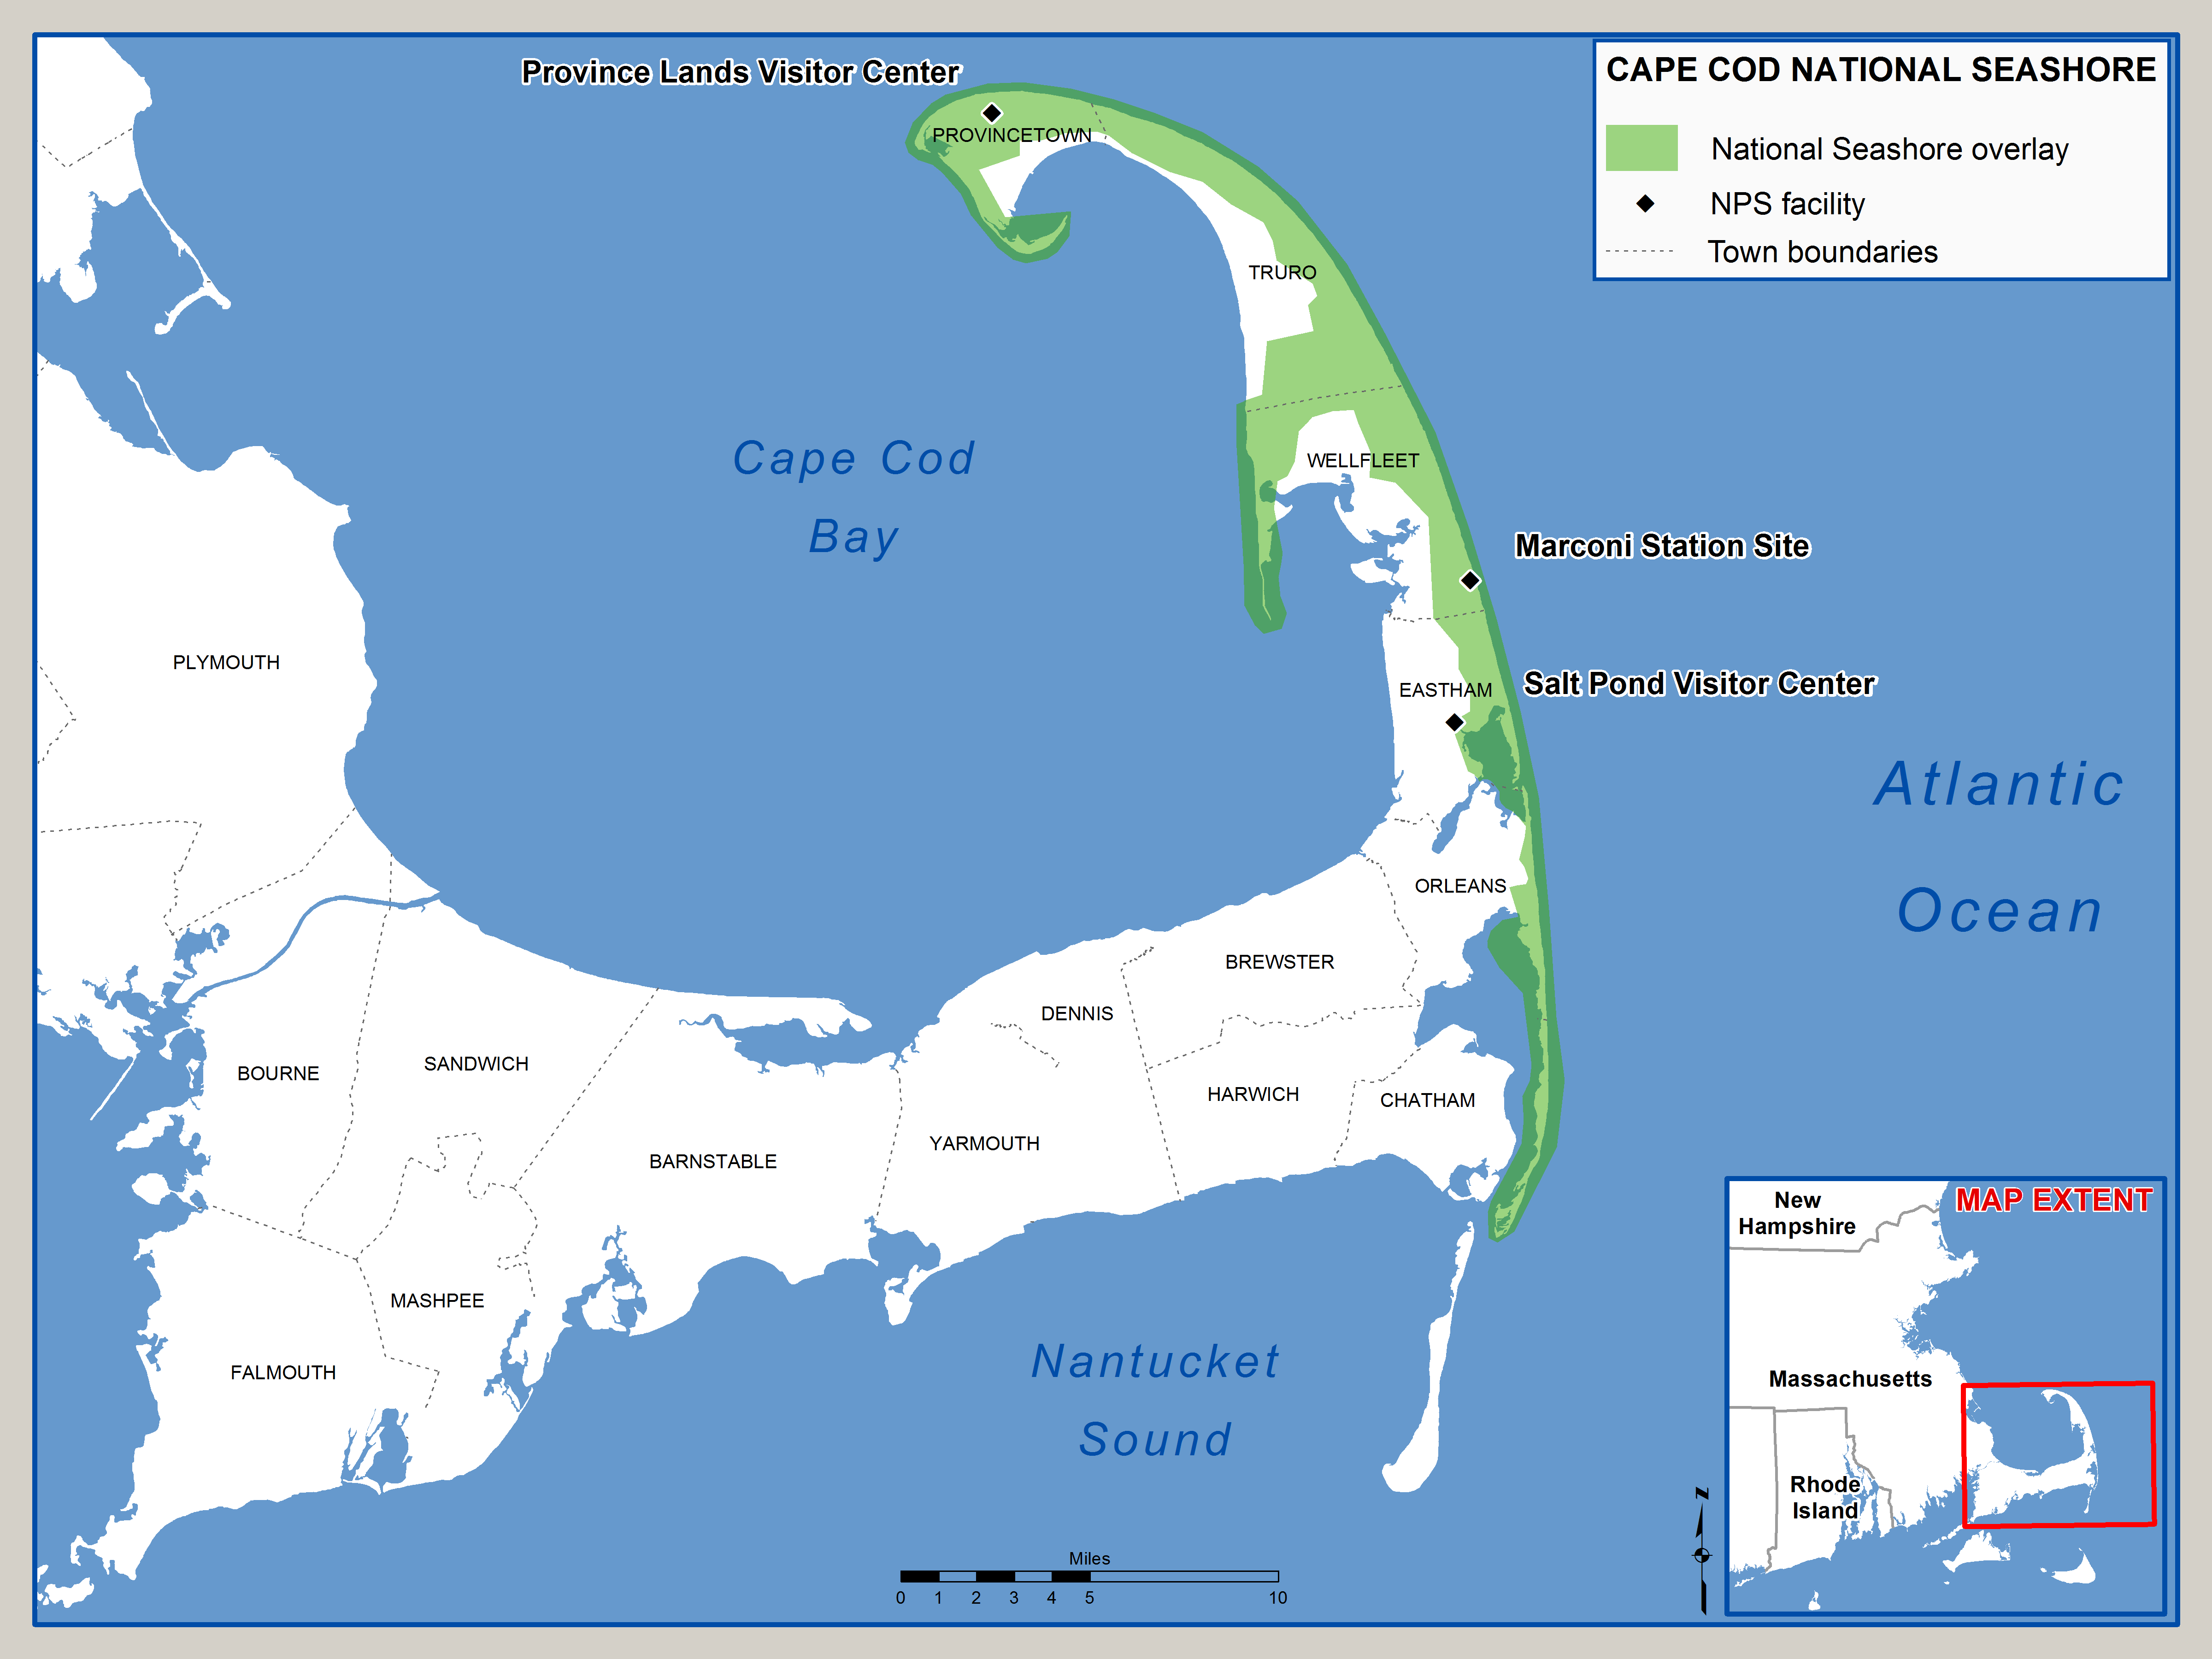 photo regarding Printable Map of Cape Cod identified as History:Cape Cod Countrywide Seaside.png - Wikimedia Commons